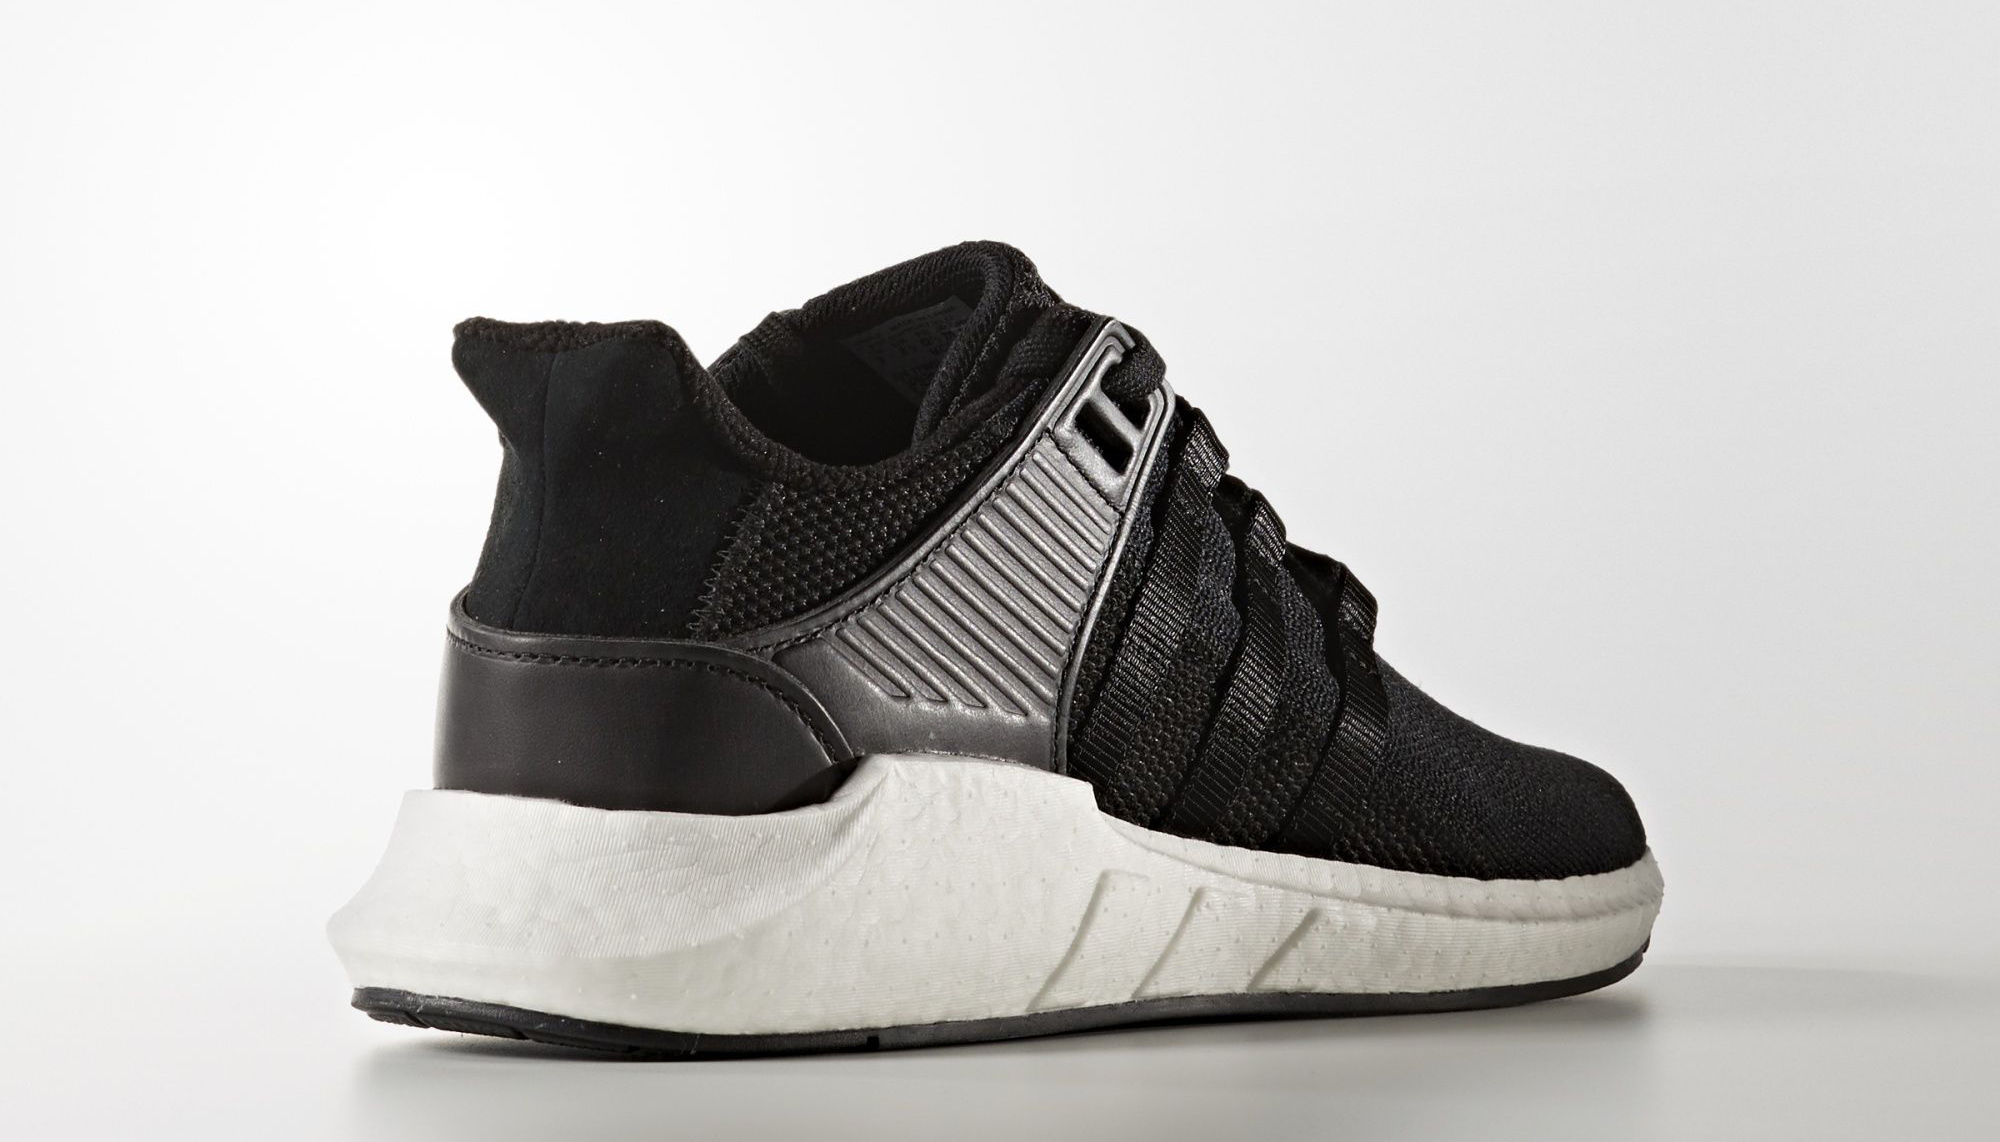 """new styles e0244 2c72f adidas EQT Support 9317 """"Milled Leather Pack"""""""